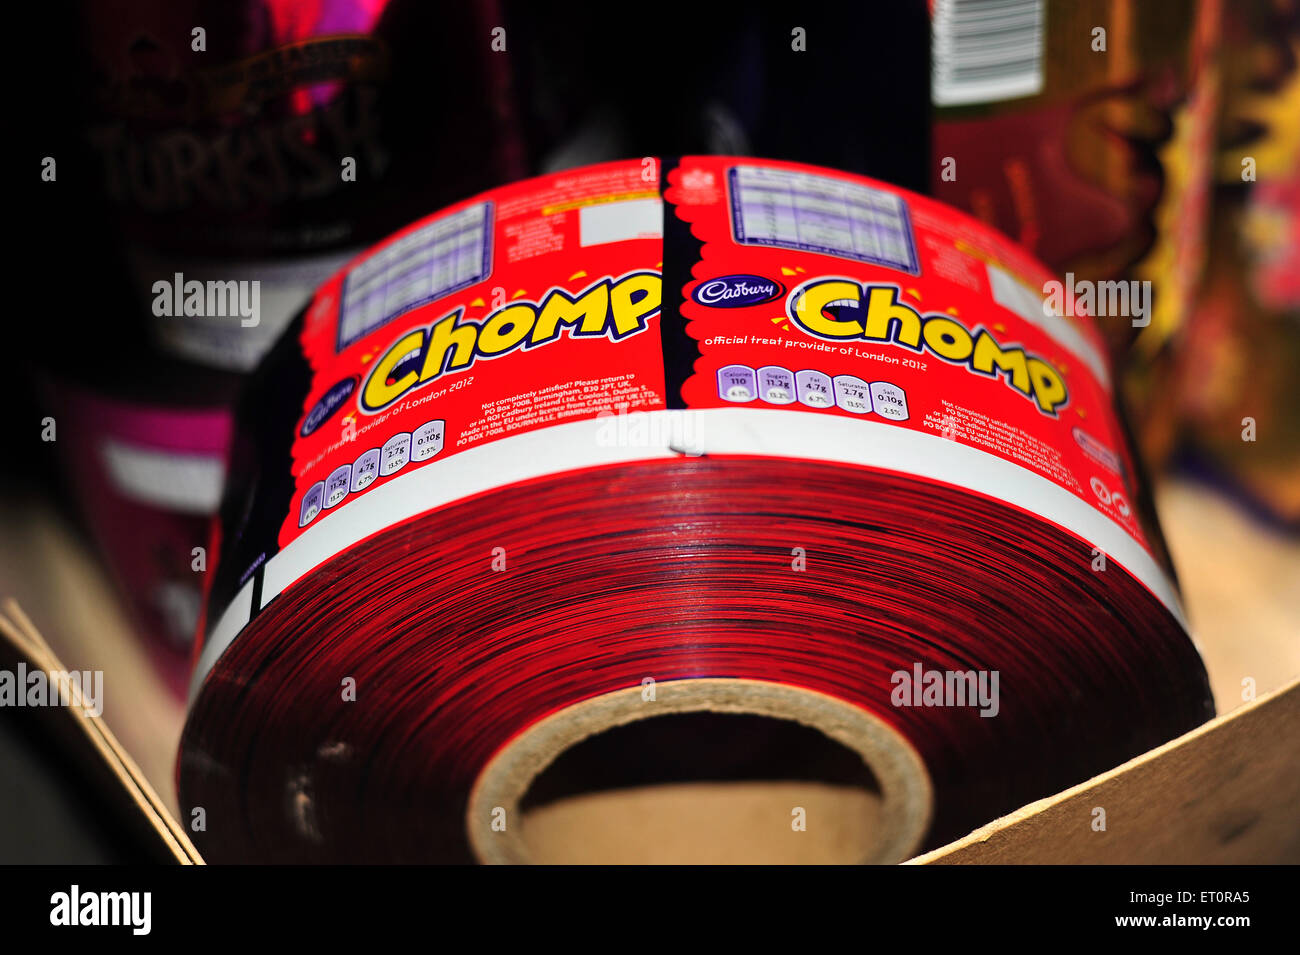 A roll of Cadbury Chomp chocolate bar wrappers in the storage warehouse for the M Shed museum in Bristol. - Stock Image